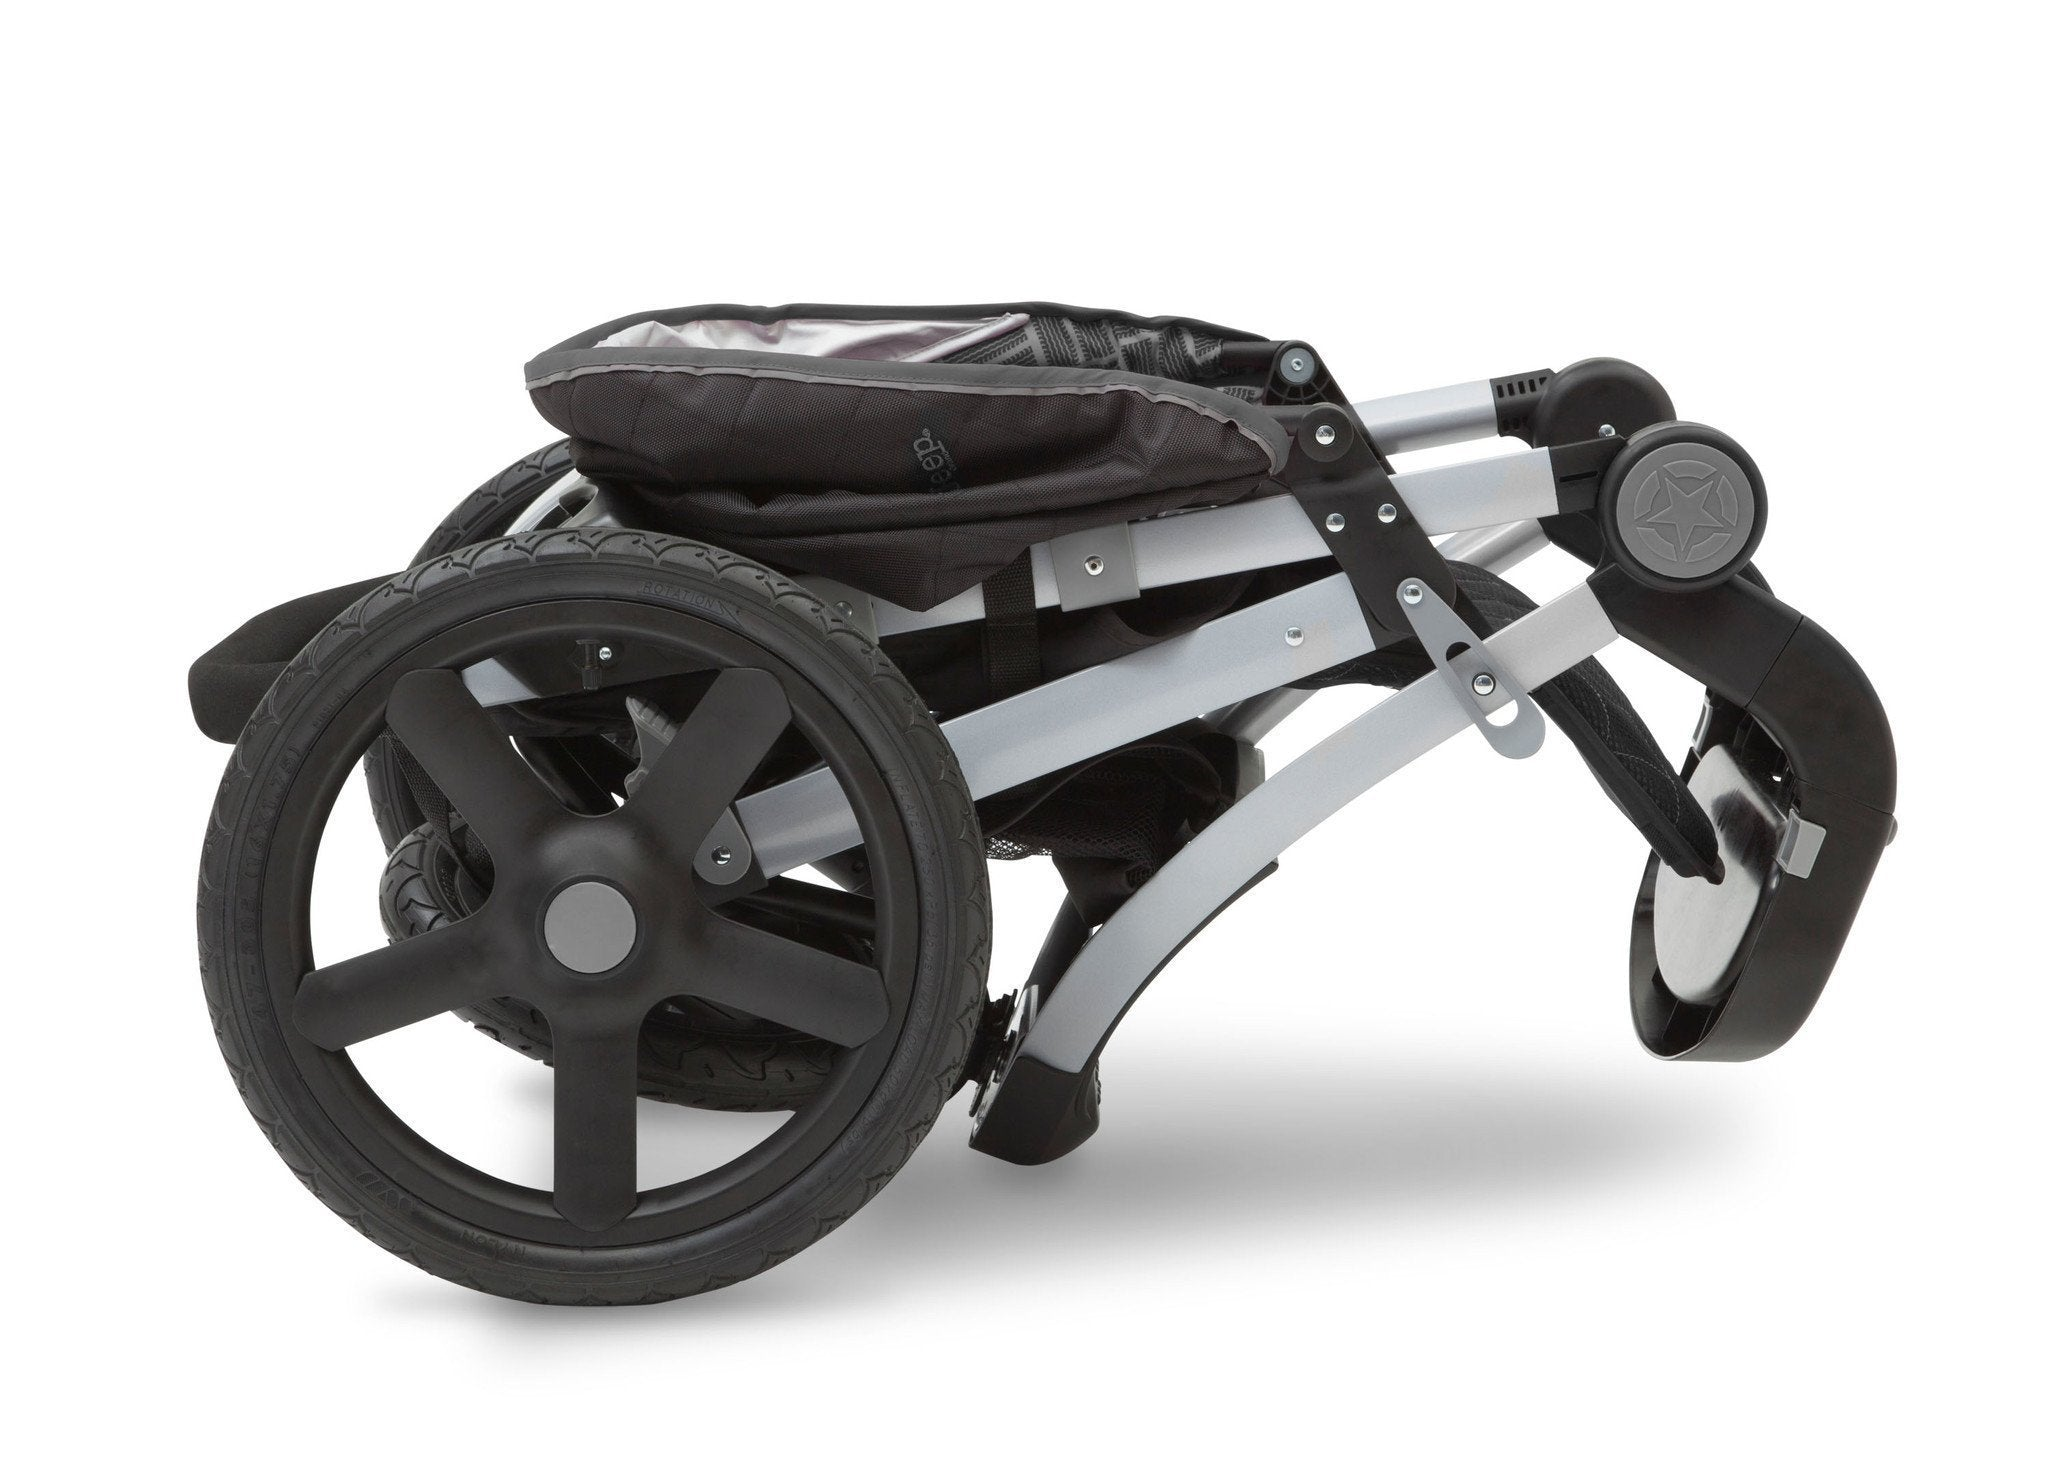 Jeep Adventure All Terrain Jogger Stroller by Delta Children, Charcoal Tracks (0251), can be folded quickly and compactly